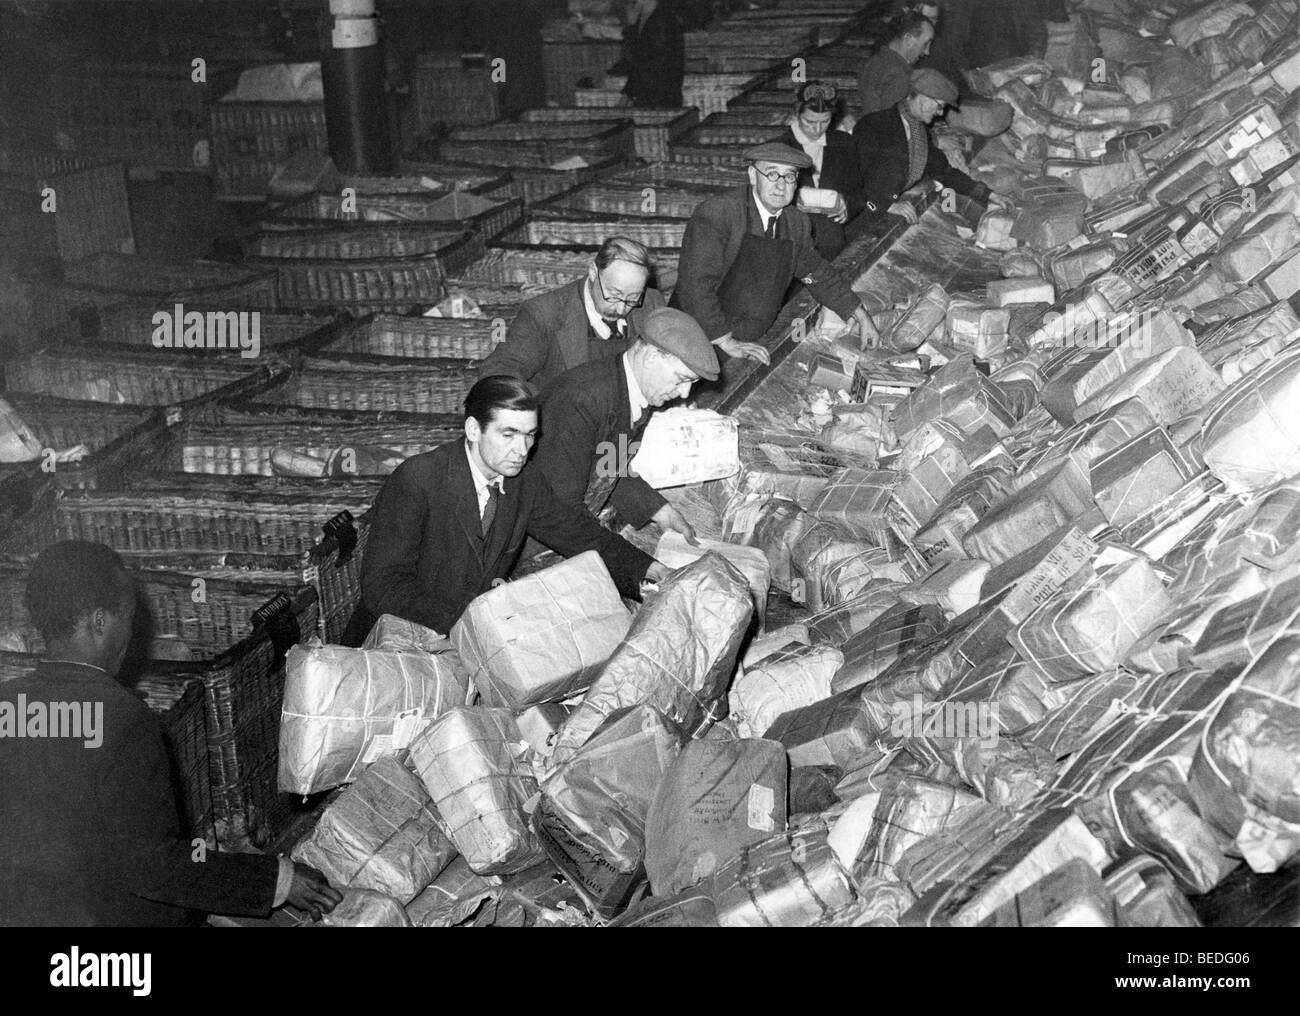 Historic photograph, postal workers sorting packages, around 1925 - Stock Image